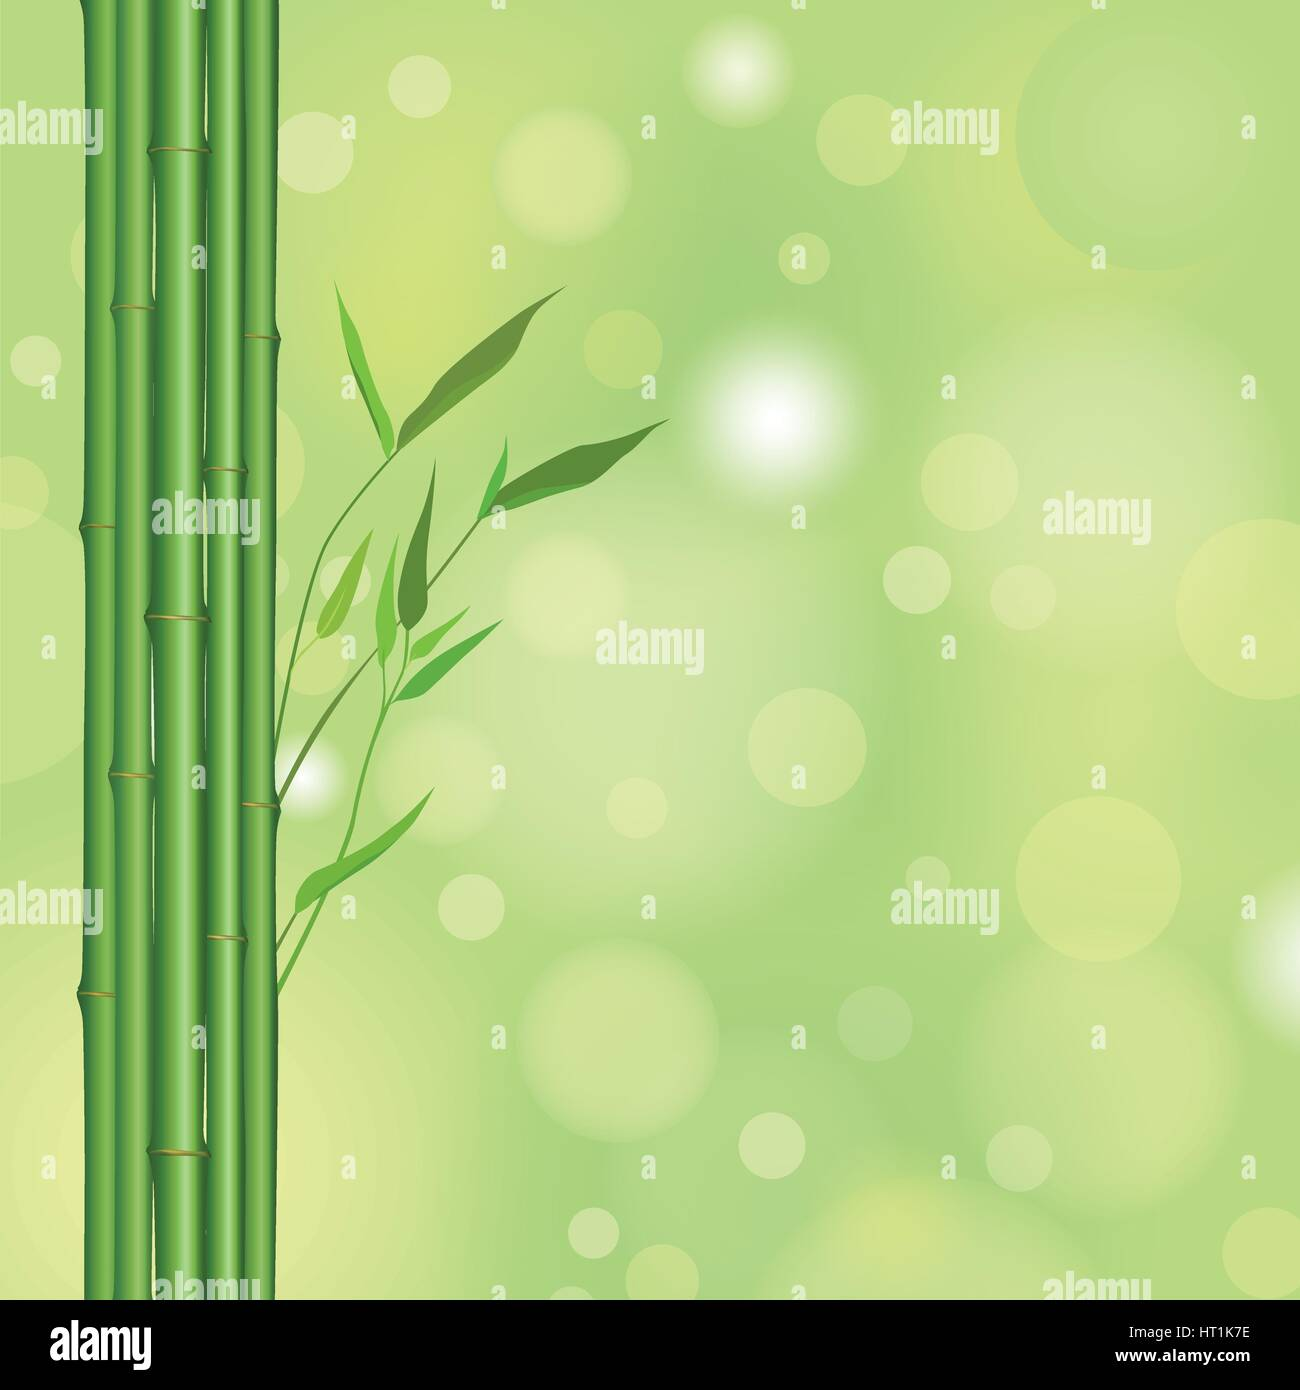 Floral background Summer outdoor wallpaper Nature spring grass